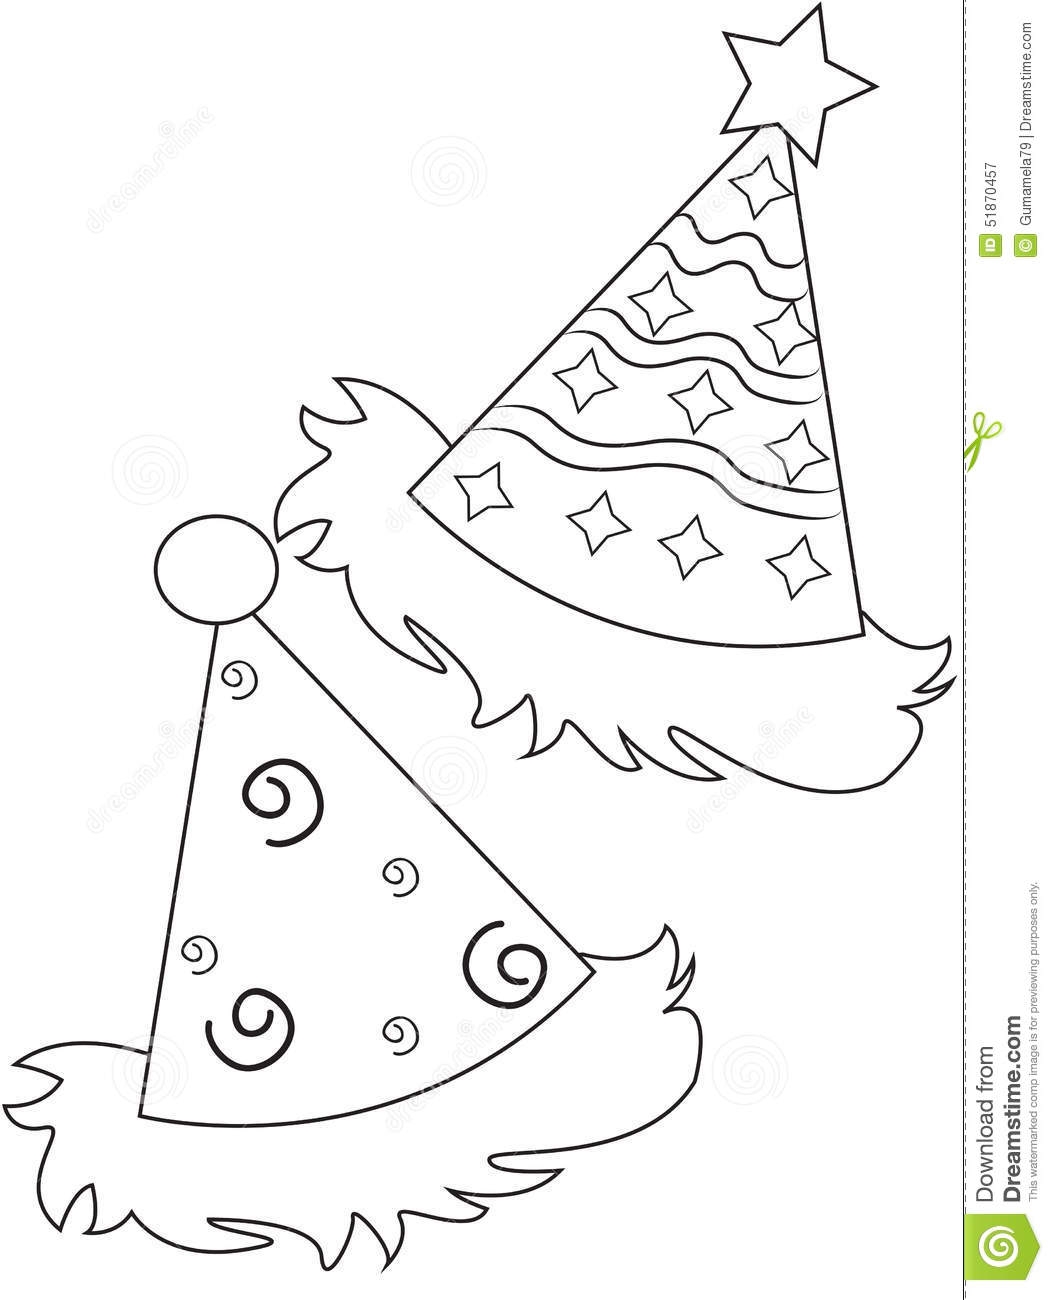 Party Hats Coloring Page Stock Illustration Image 51870457